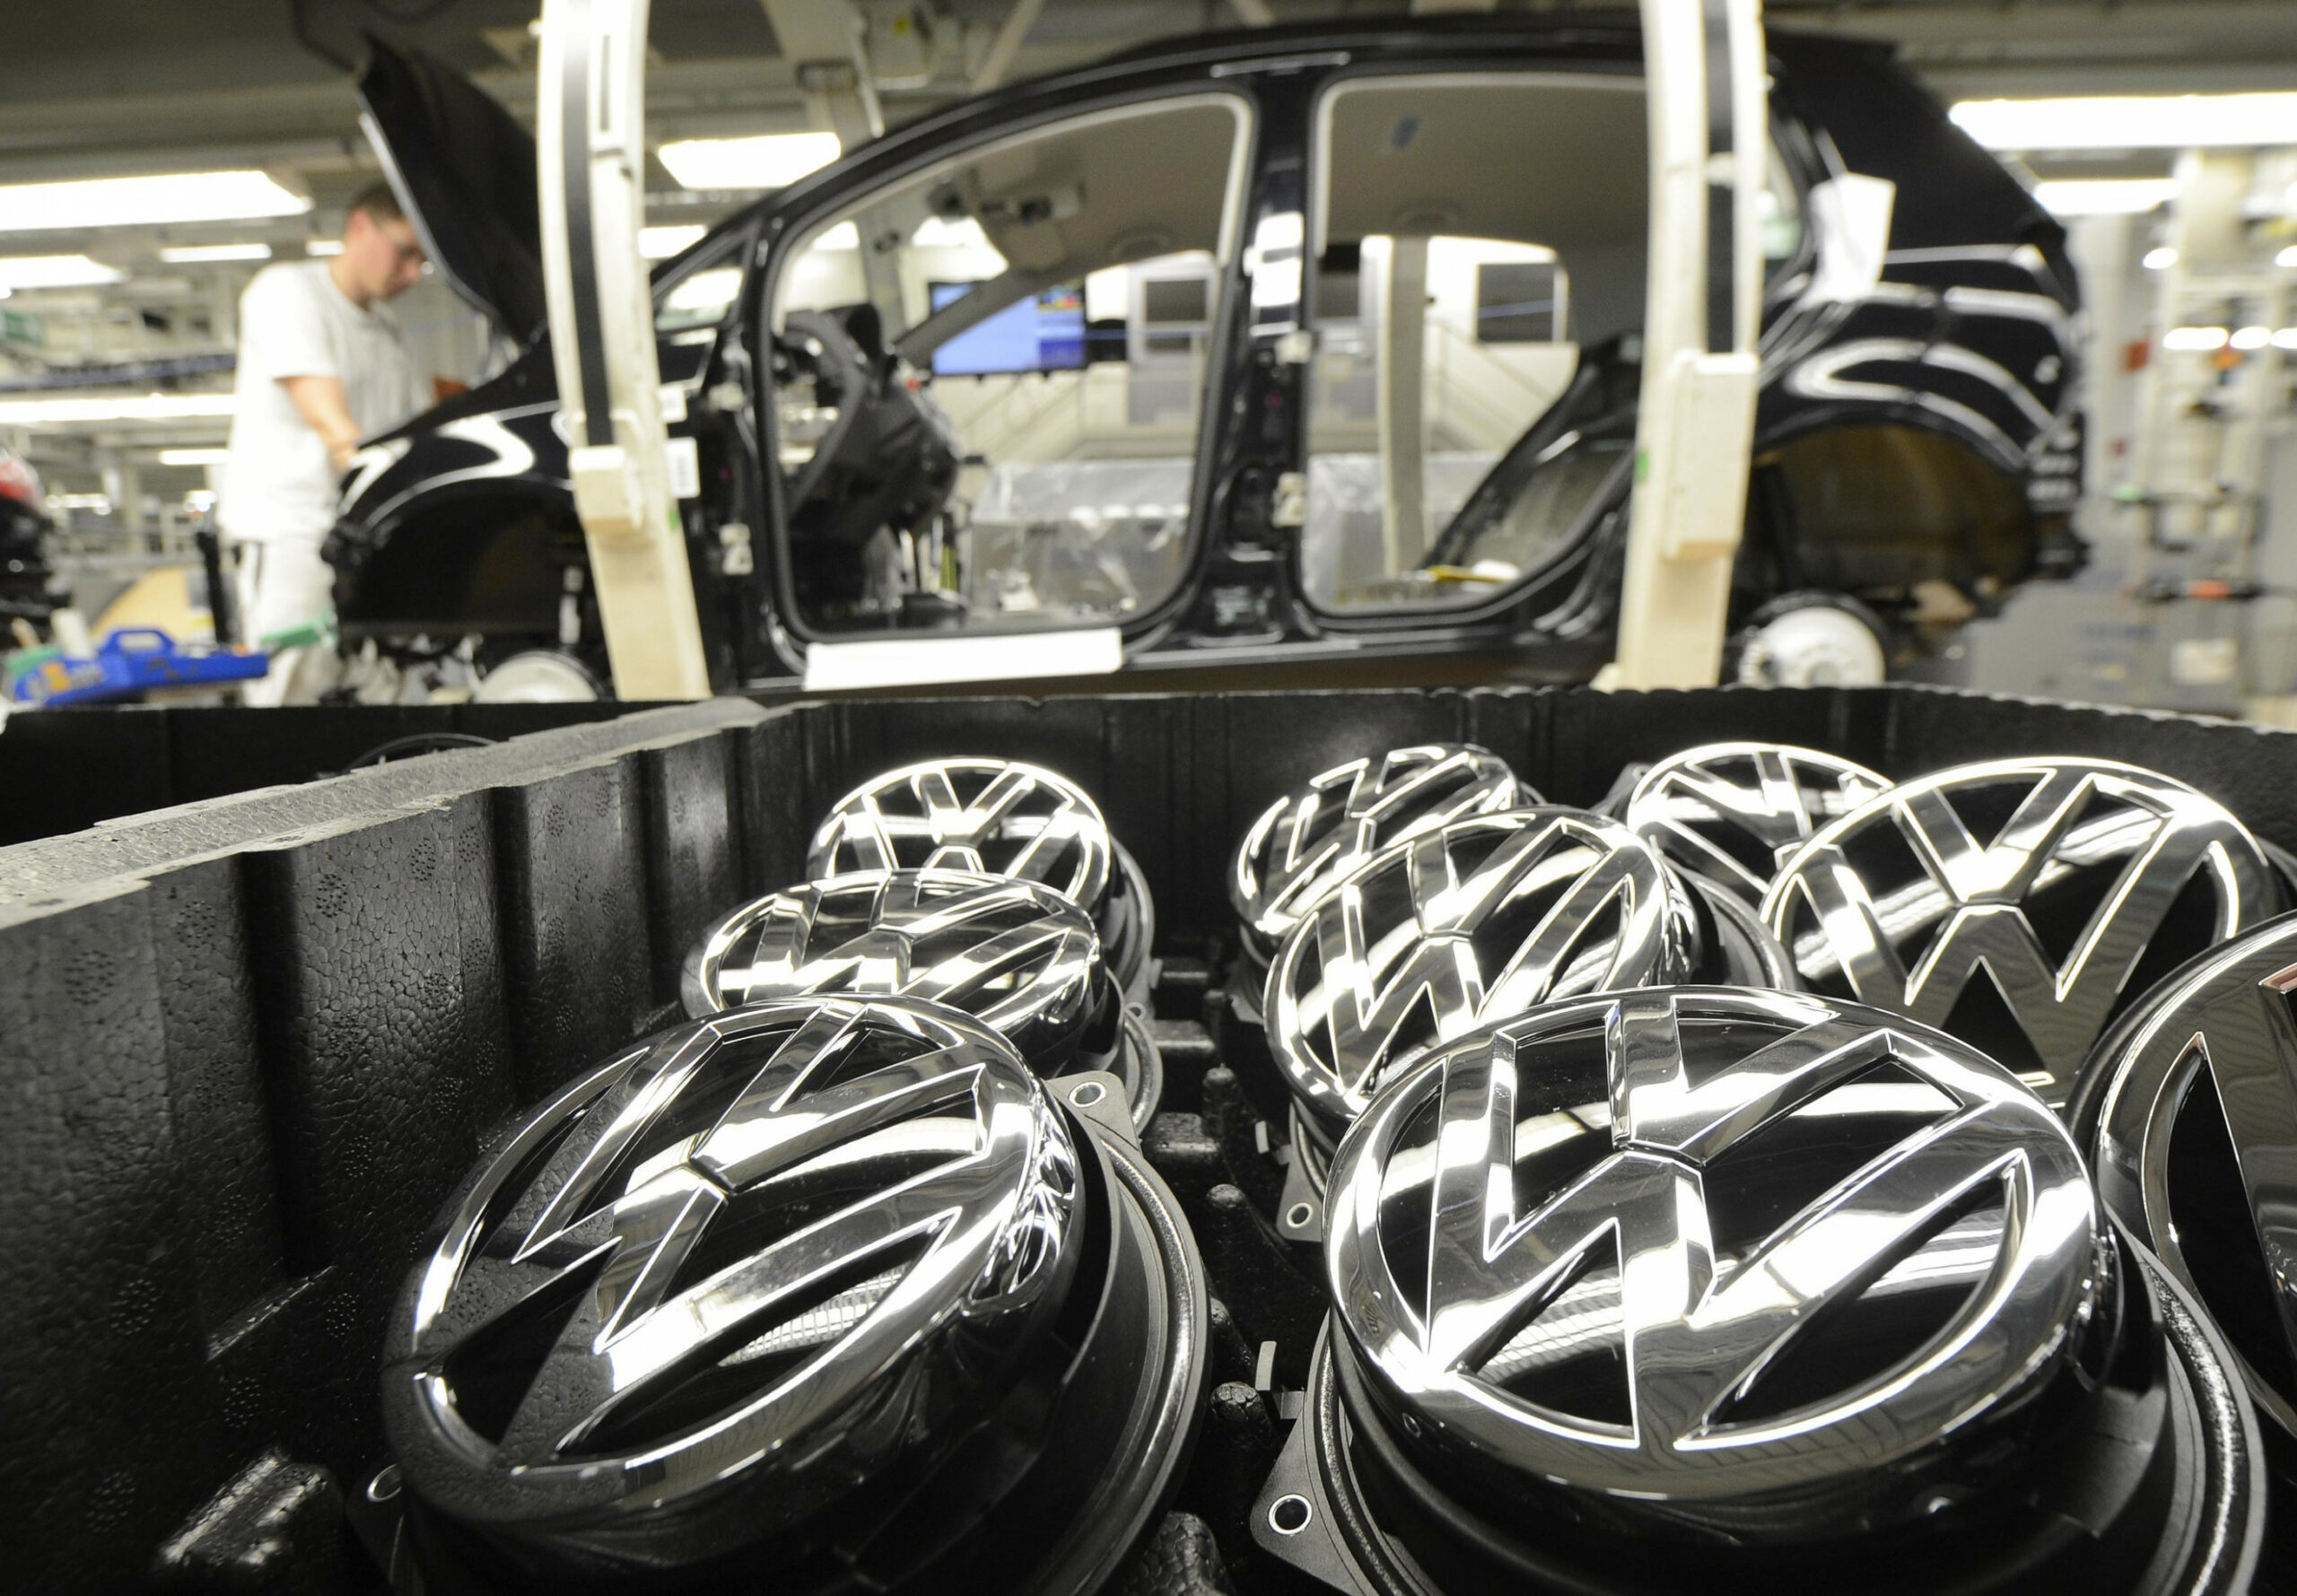 VW considers options for record $6.6 billion dividend